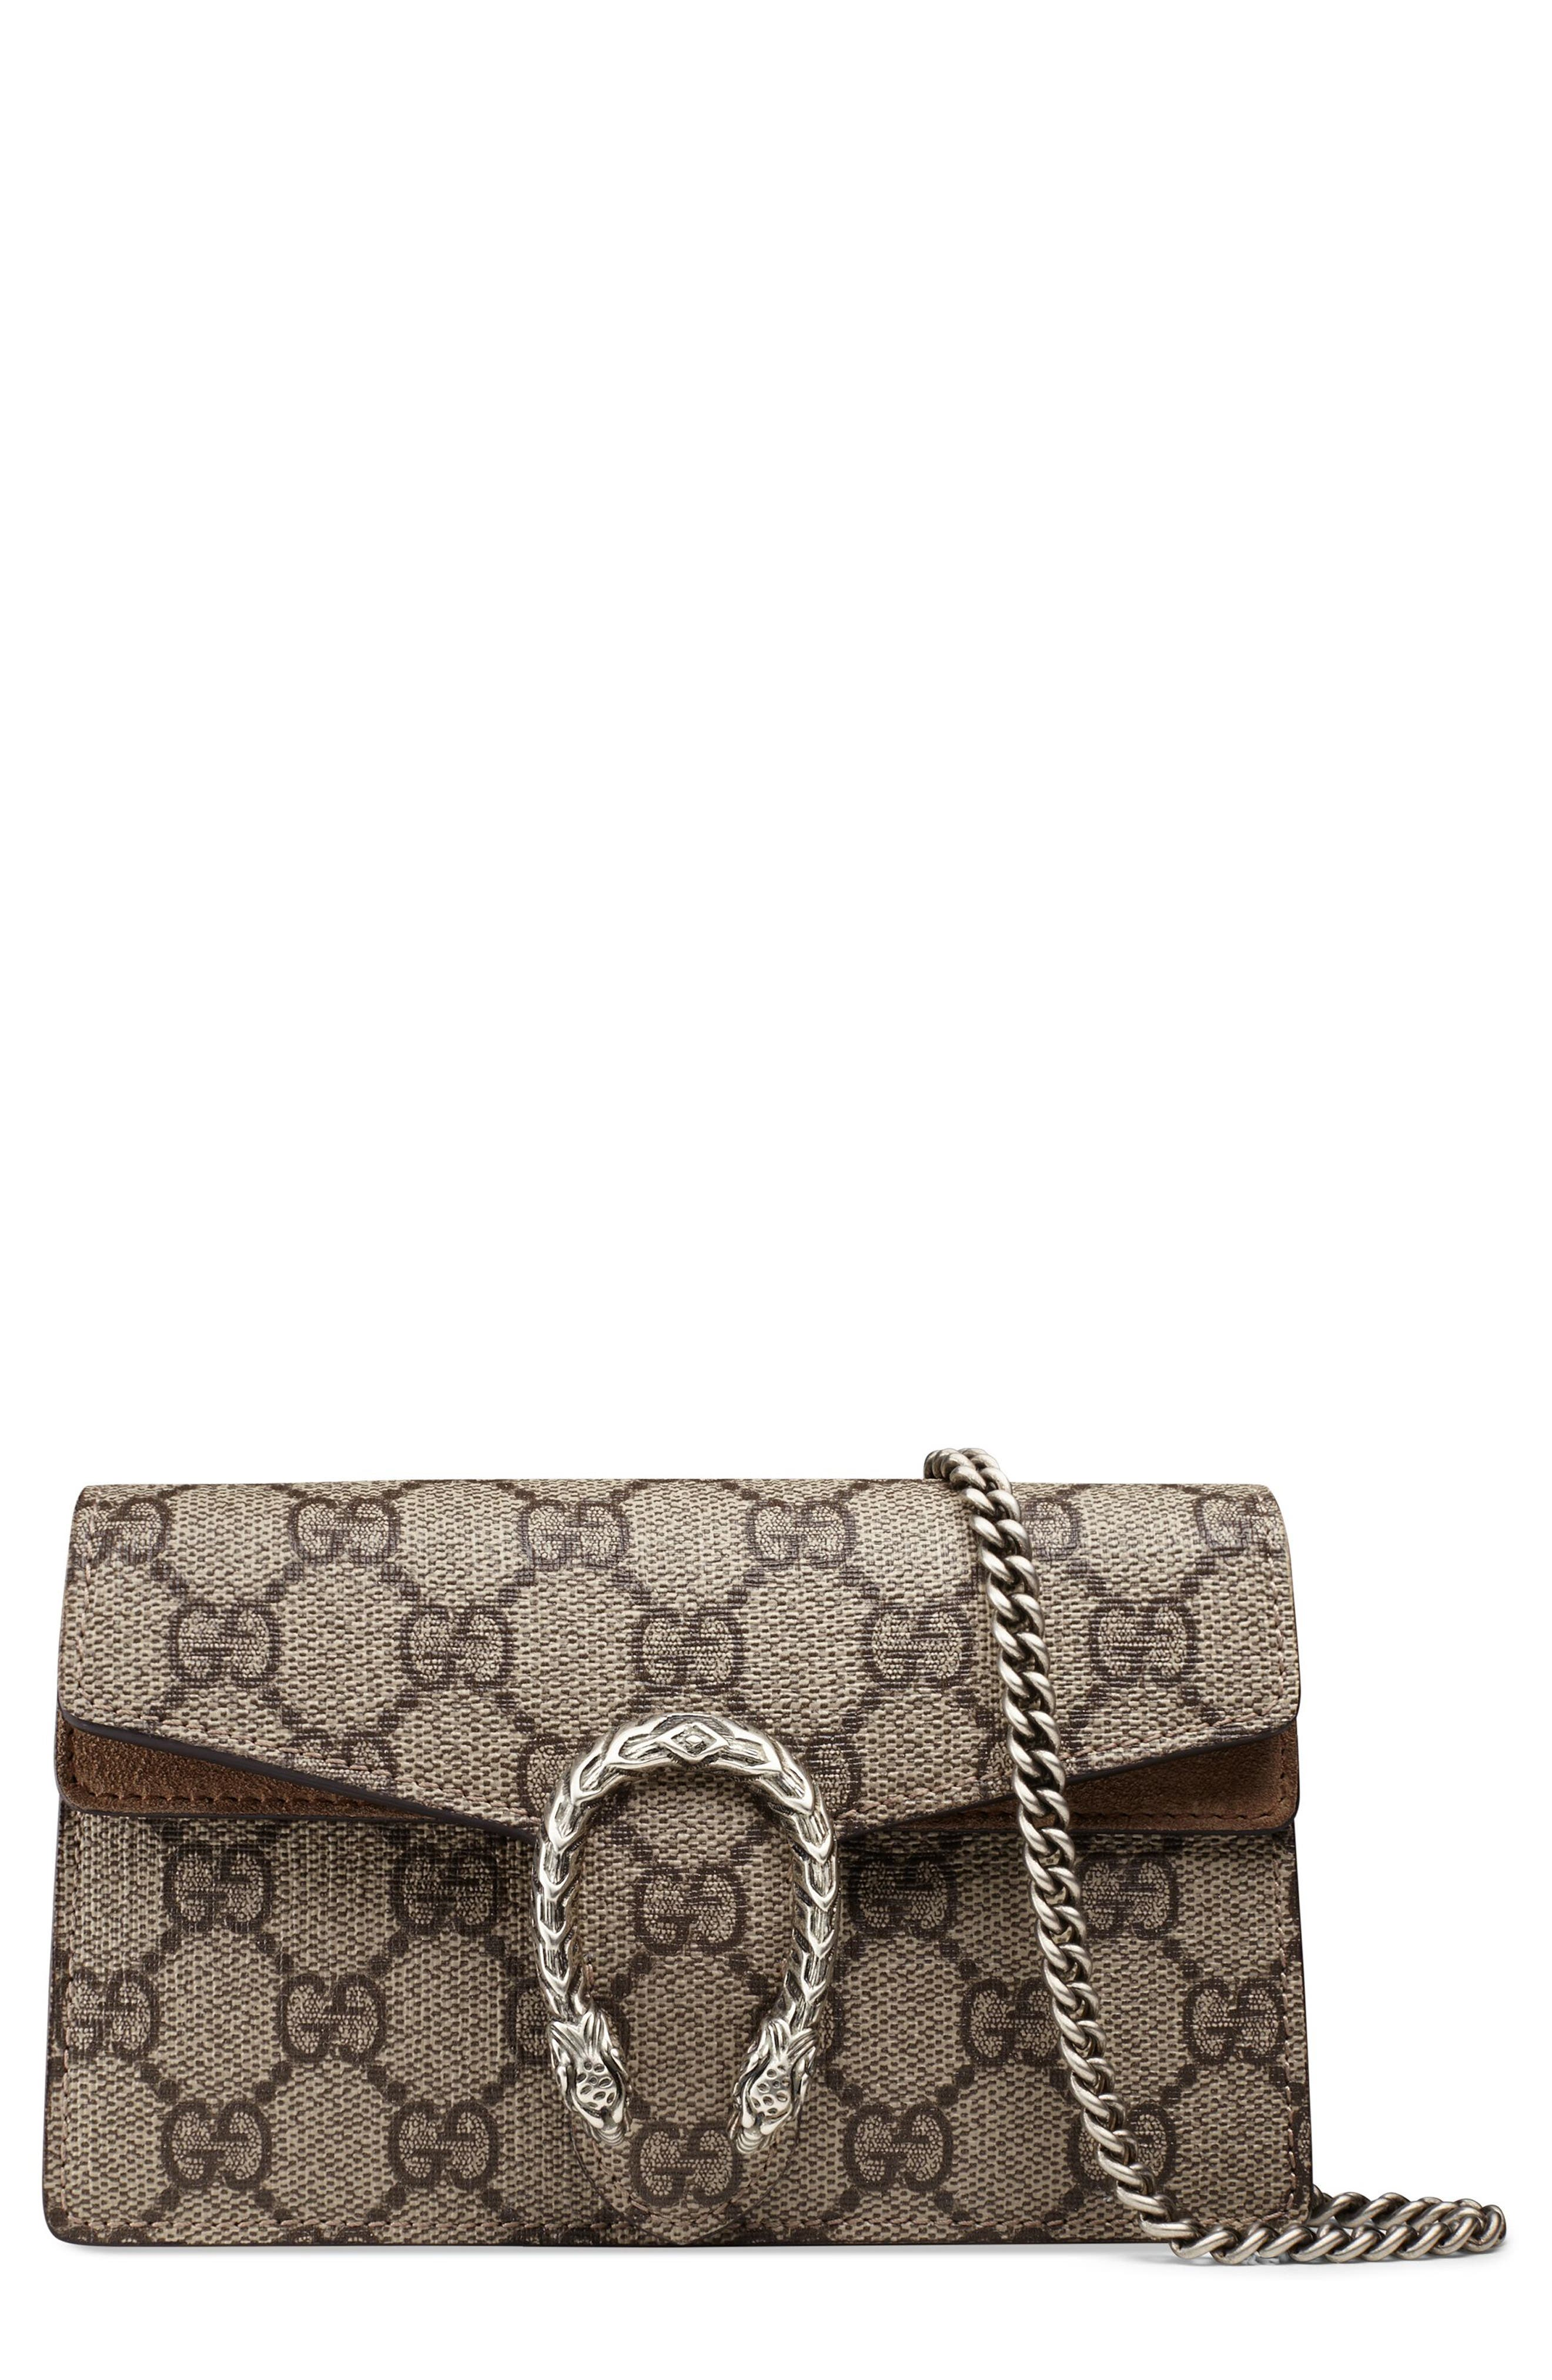 Main Image - Gucci Super Mini Dionysus GG Supreme Canvas & Suede Shoulder Bag